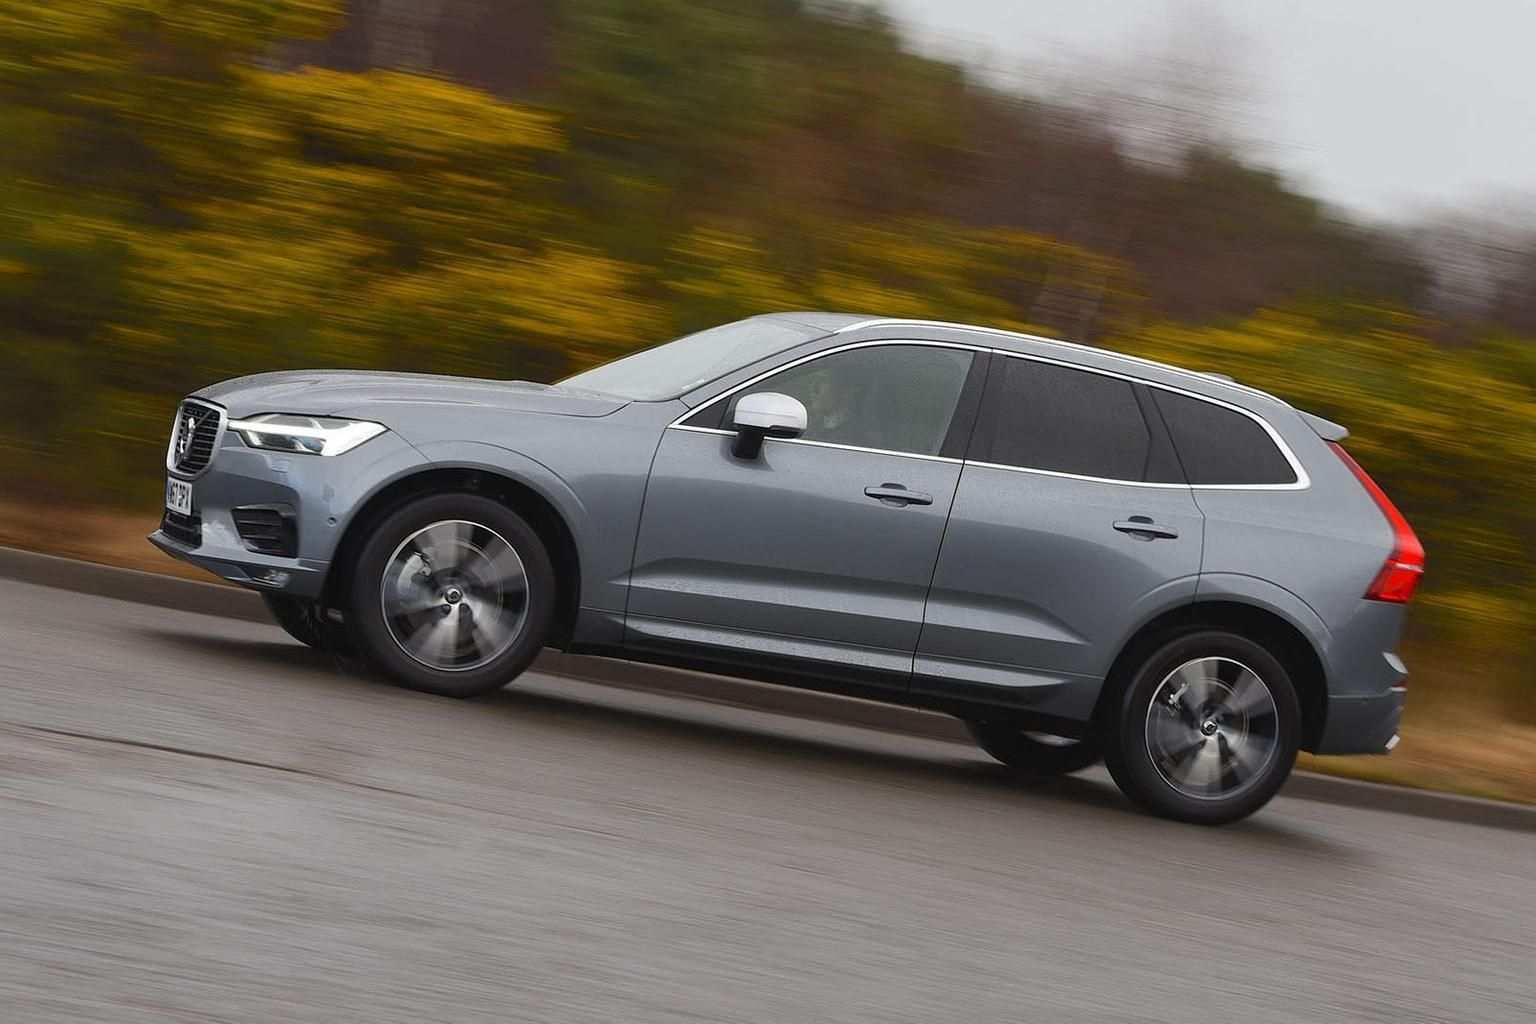 24 Best Review Volvo Xc60 2019 Manual New Concept with Volvo Xc60 2019 Manual